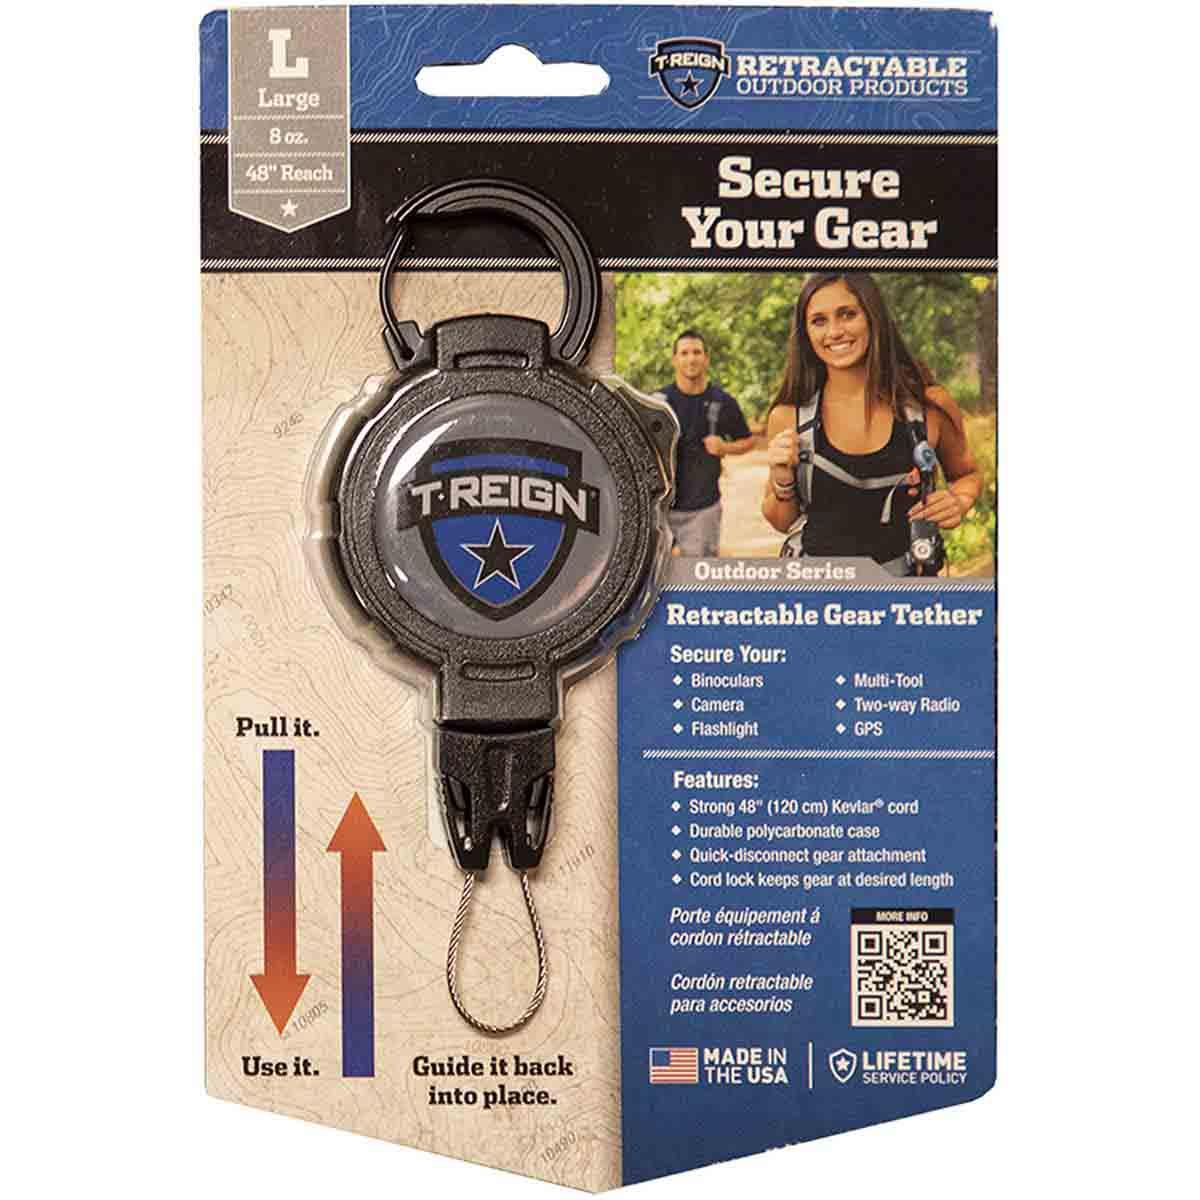 T-Reign Outdoor Series Retractable Gear Tether, Large